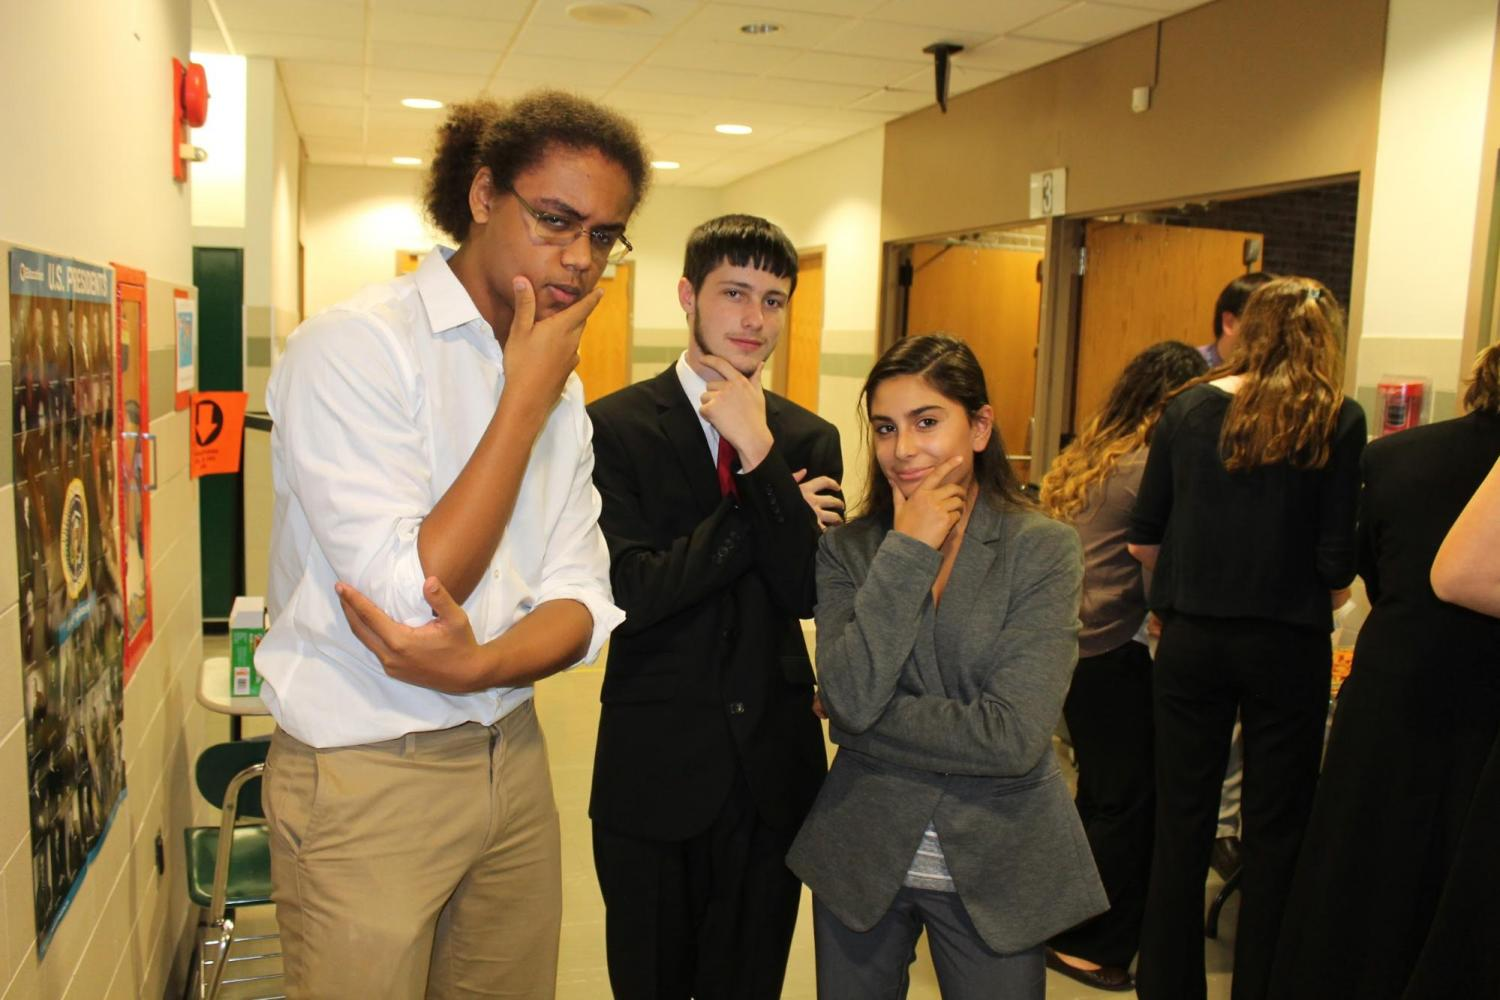 Model UN students Viktor Urvantsev, Colton Booth, and Jackie Bechara bring the presidential election to a whole new level.